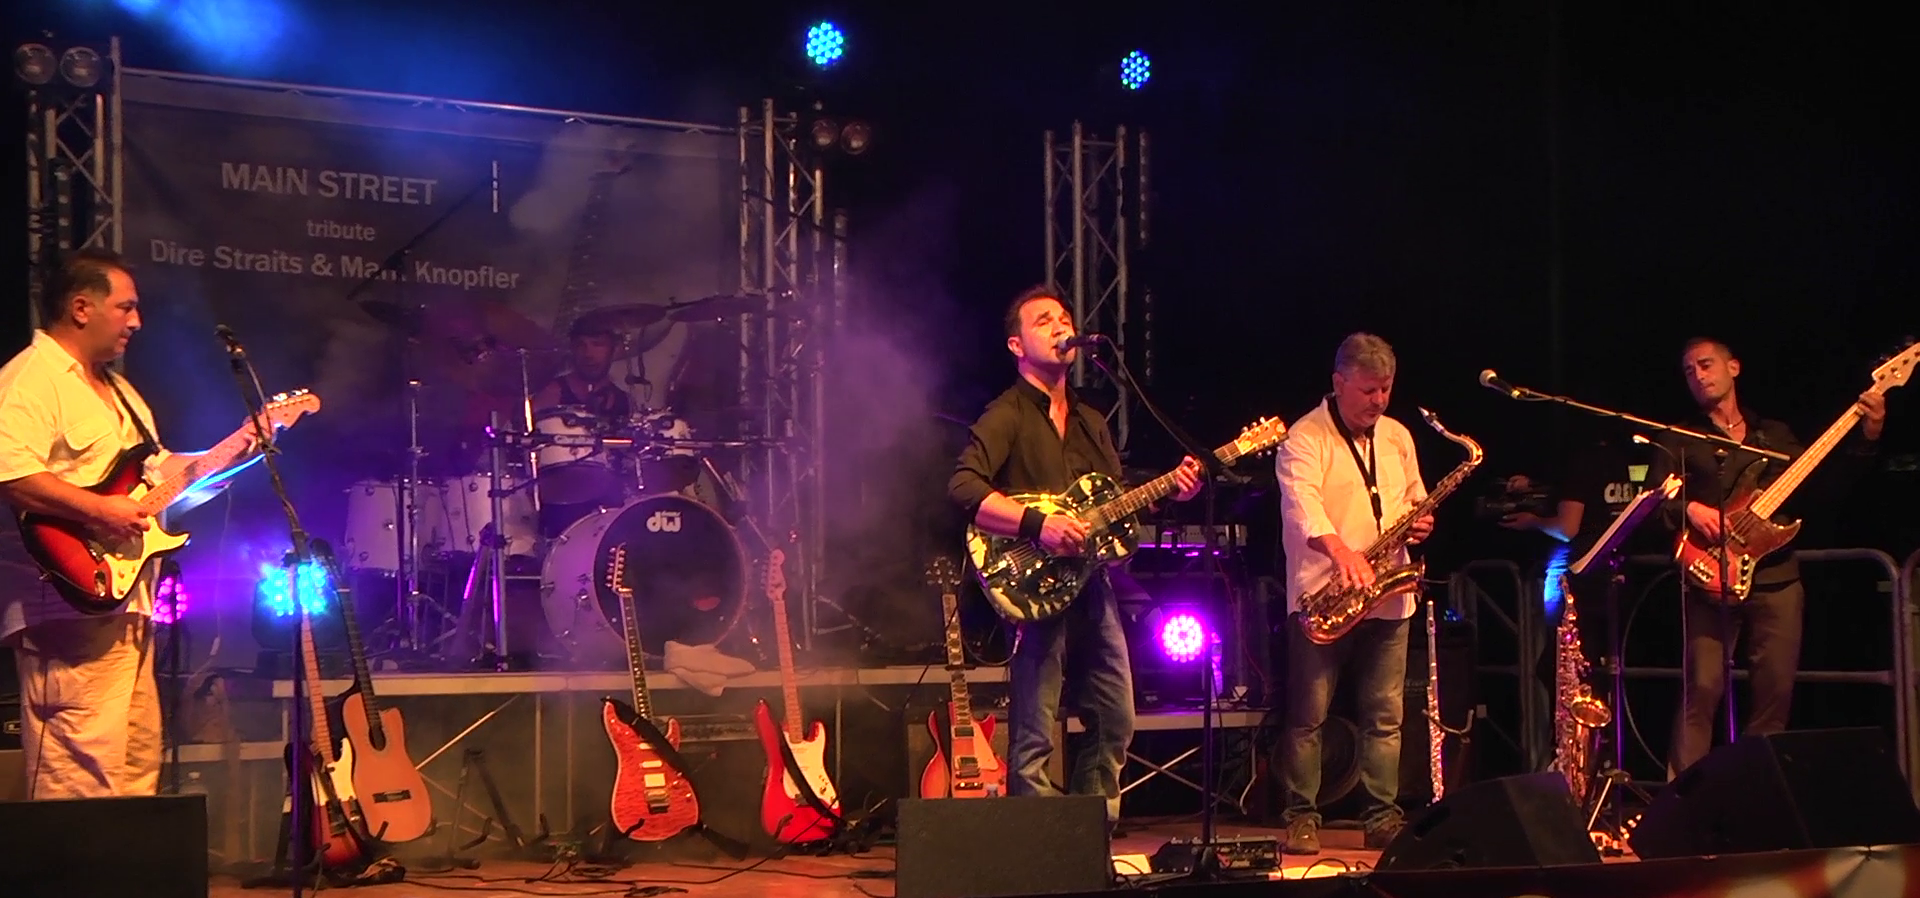 Main Street-Dire Straits tribute band